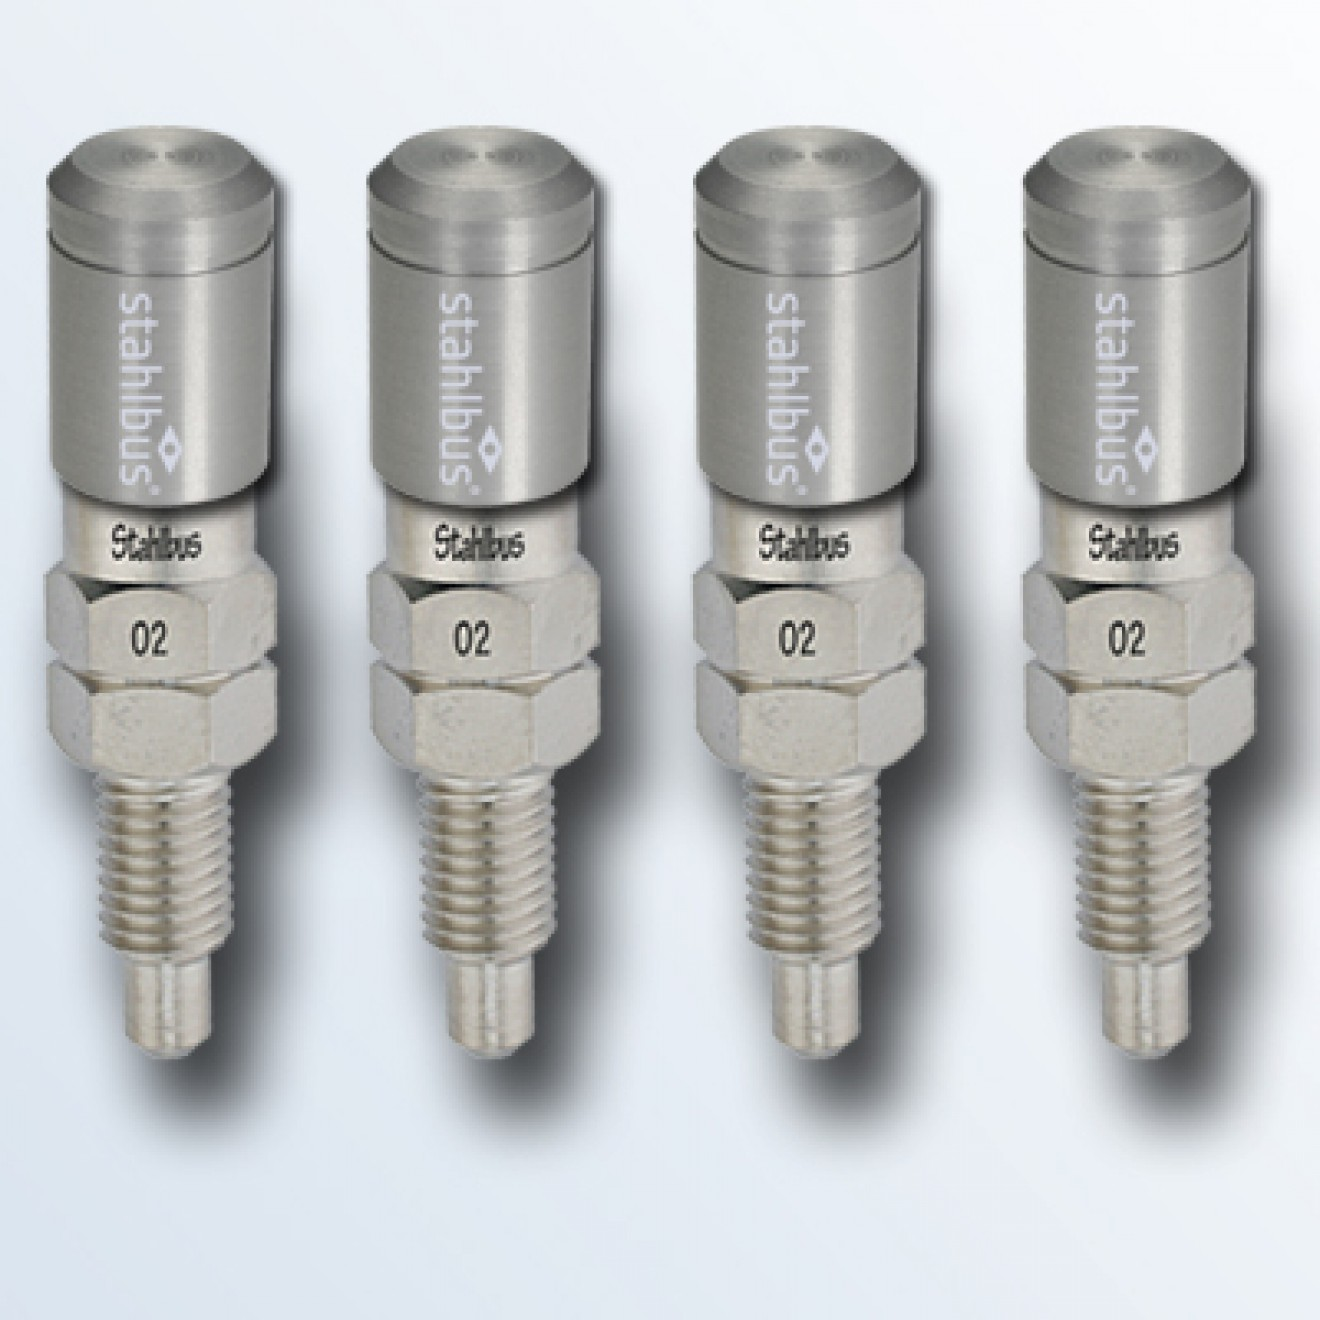 4-piece set stahlbus Bleeder valve M7x1.0x16mm, steel with natural coloured dust cap